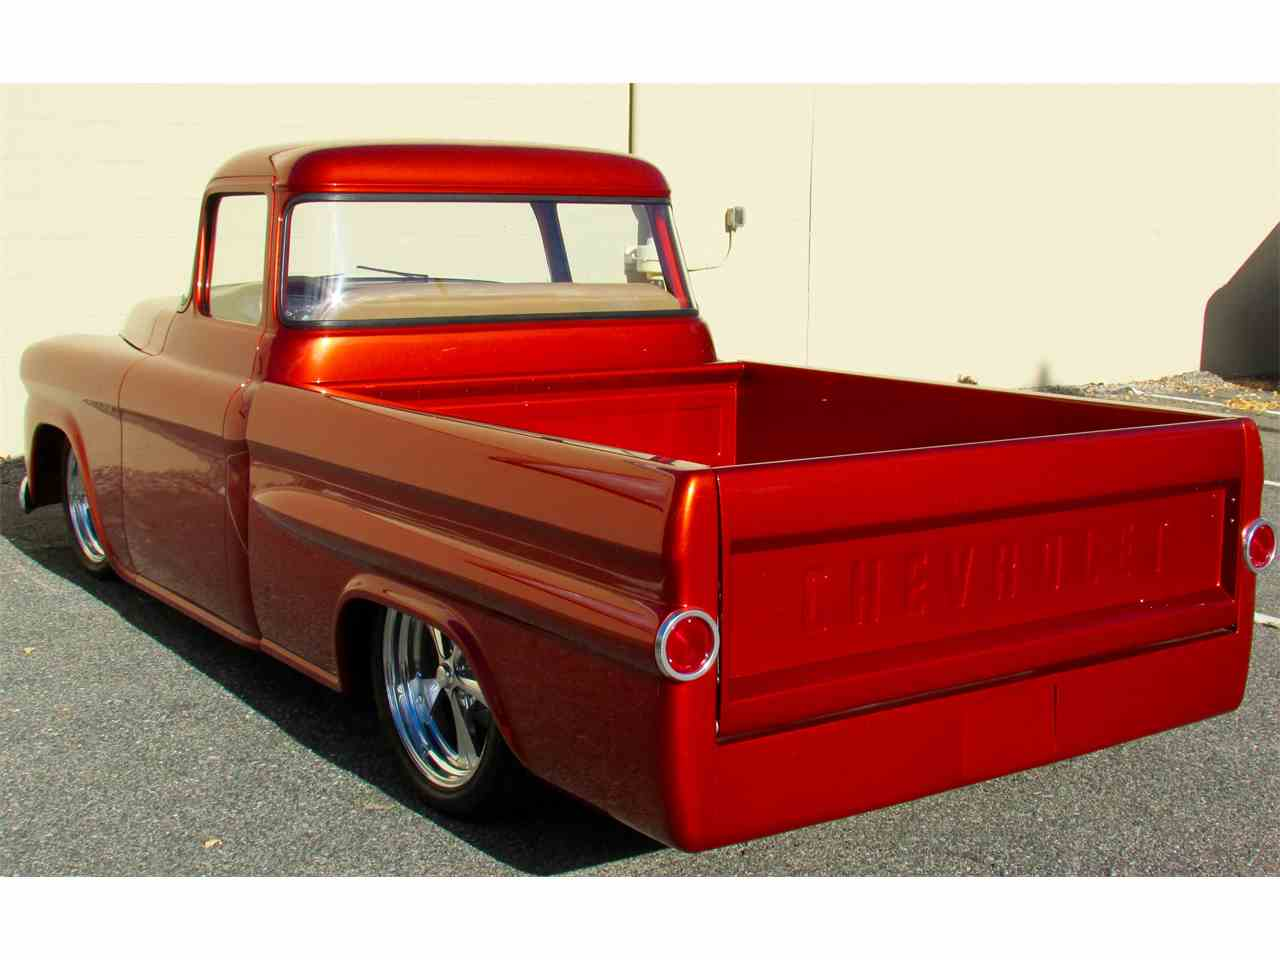 Large Picture of Classic '59 Chevrolet Fleetside Custom Pickup Truck  located in Framingham Massachusetts Offered by a Private Seller - JPTV